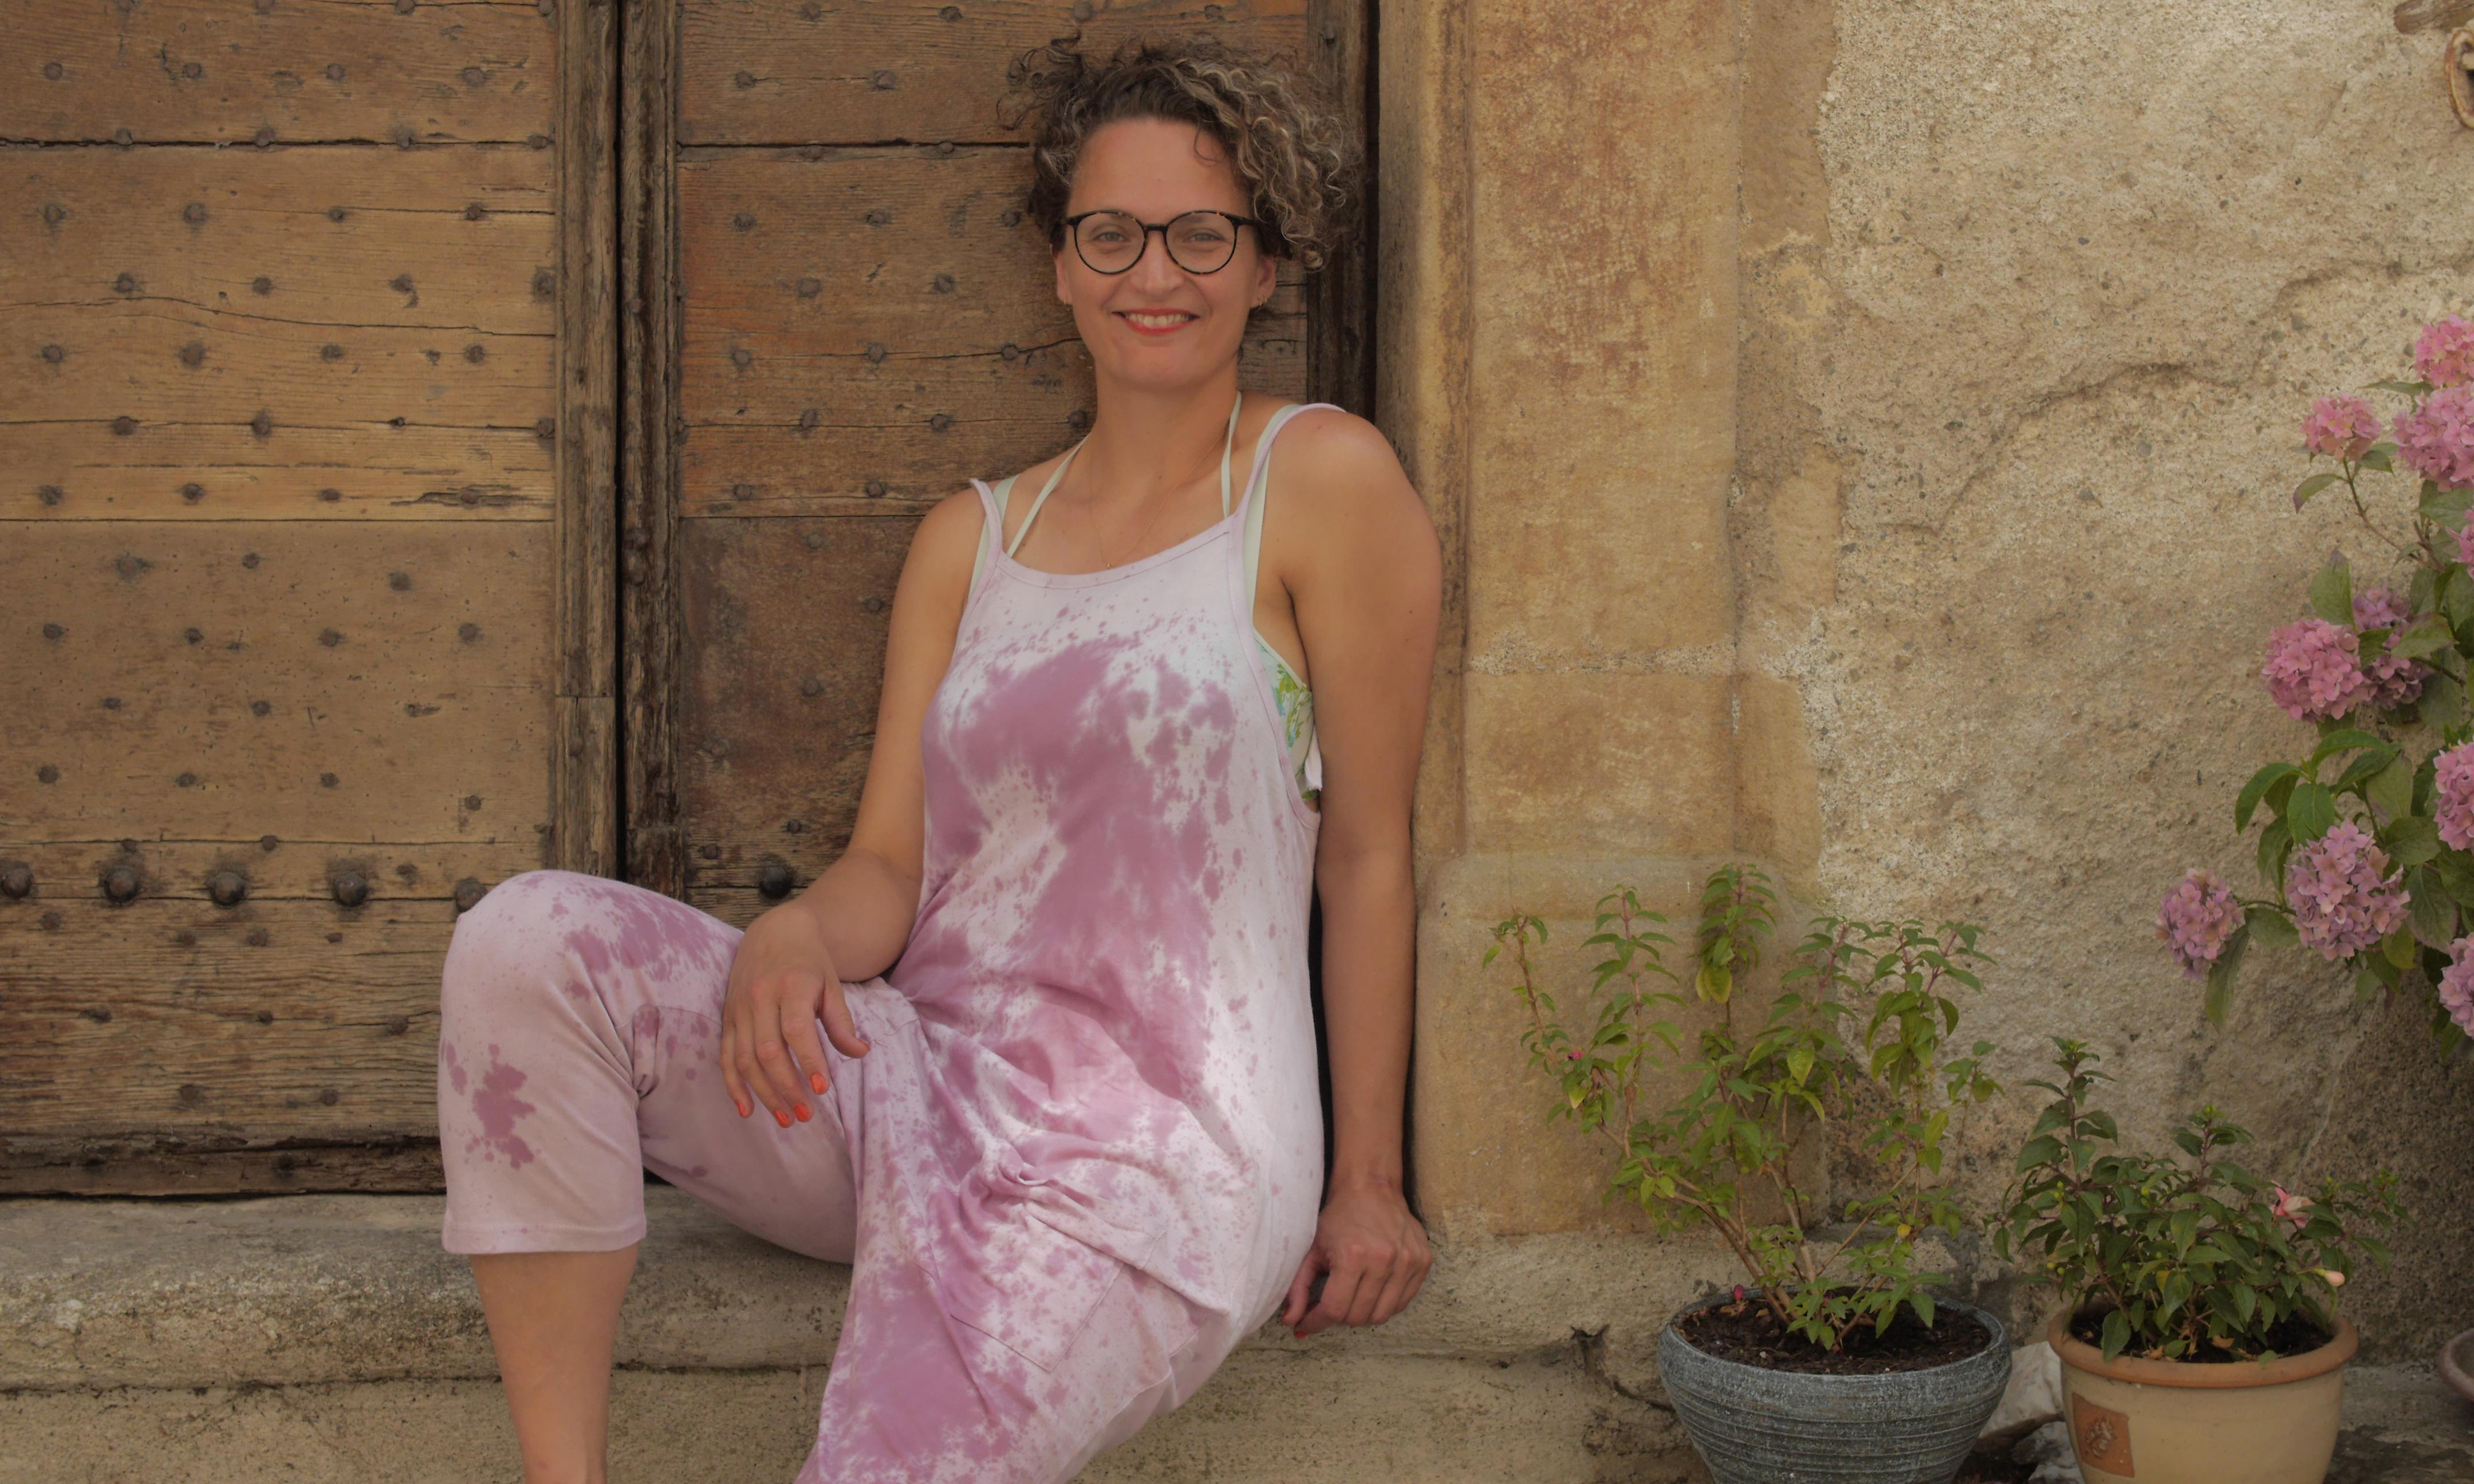 'I smell like a broad on a bender' – why I decided to tie-dye my clothes with wine